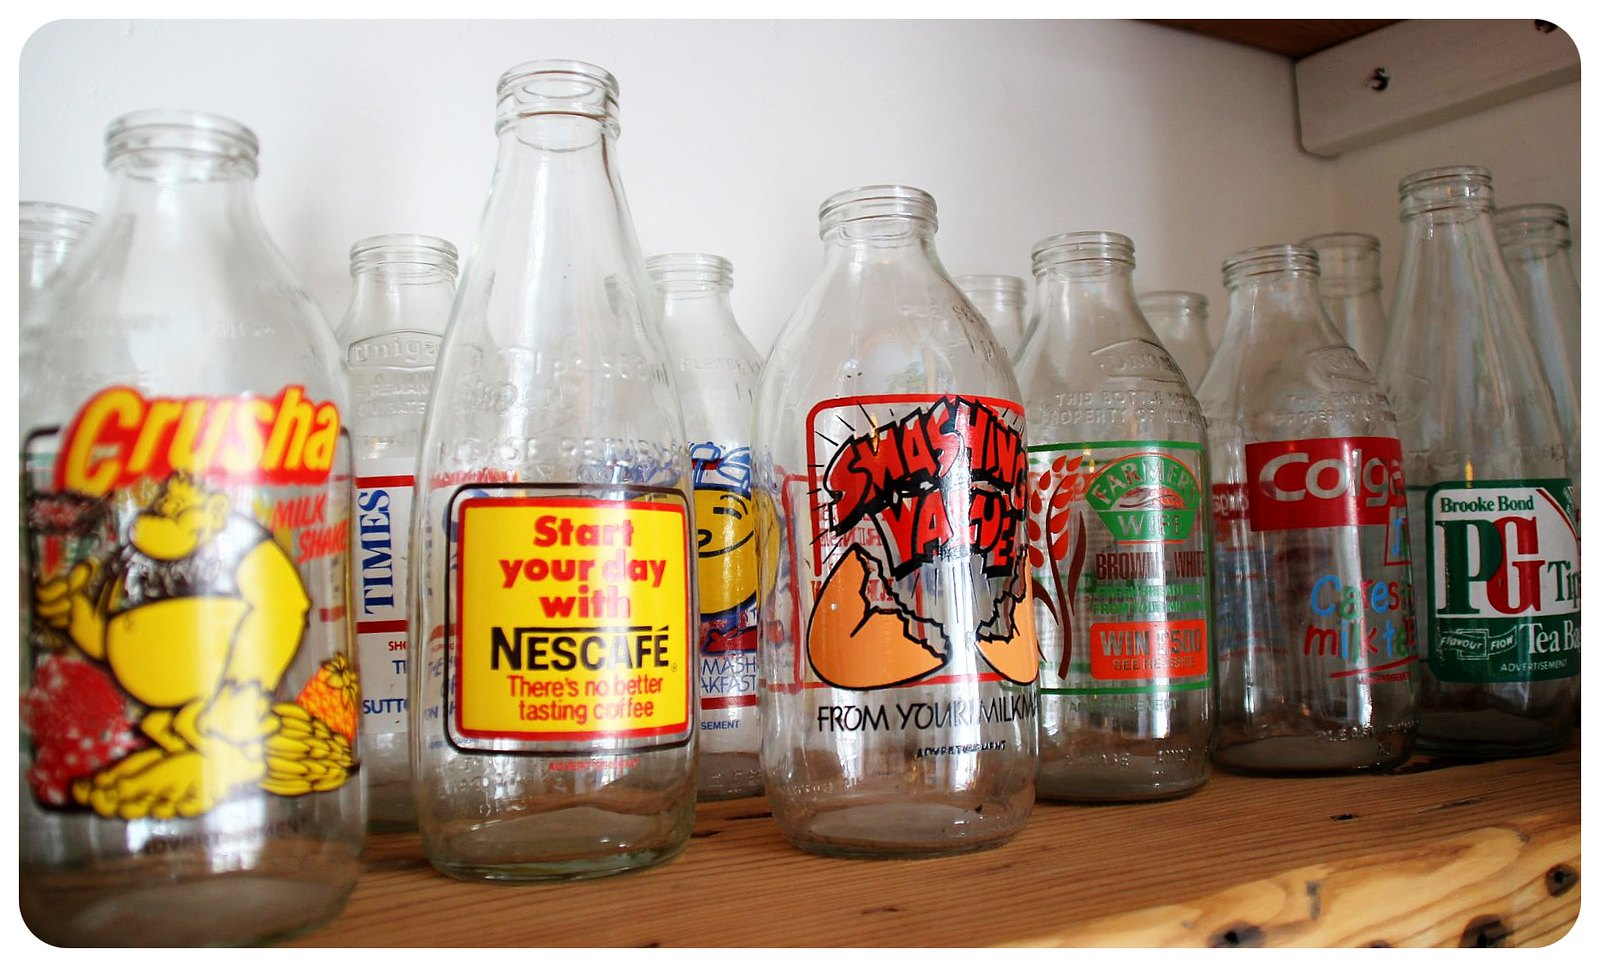 snooze b&b brighton bottles